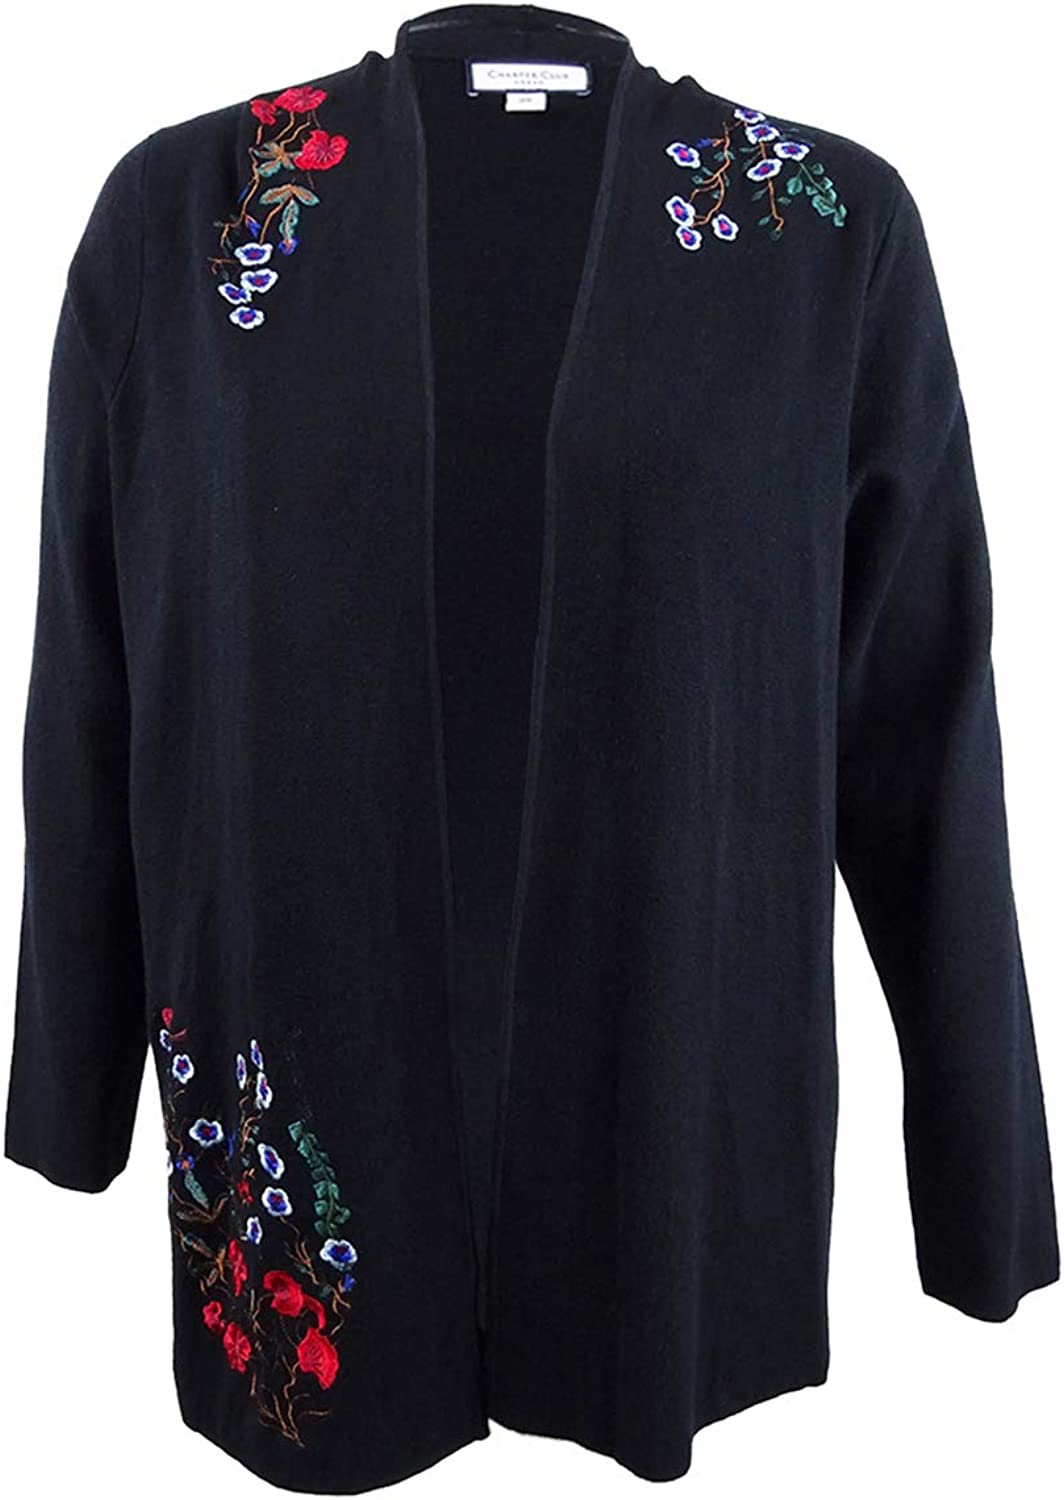 Charter Club Womens Plus Embroidered Open Front Cardigan Sweater